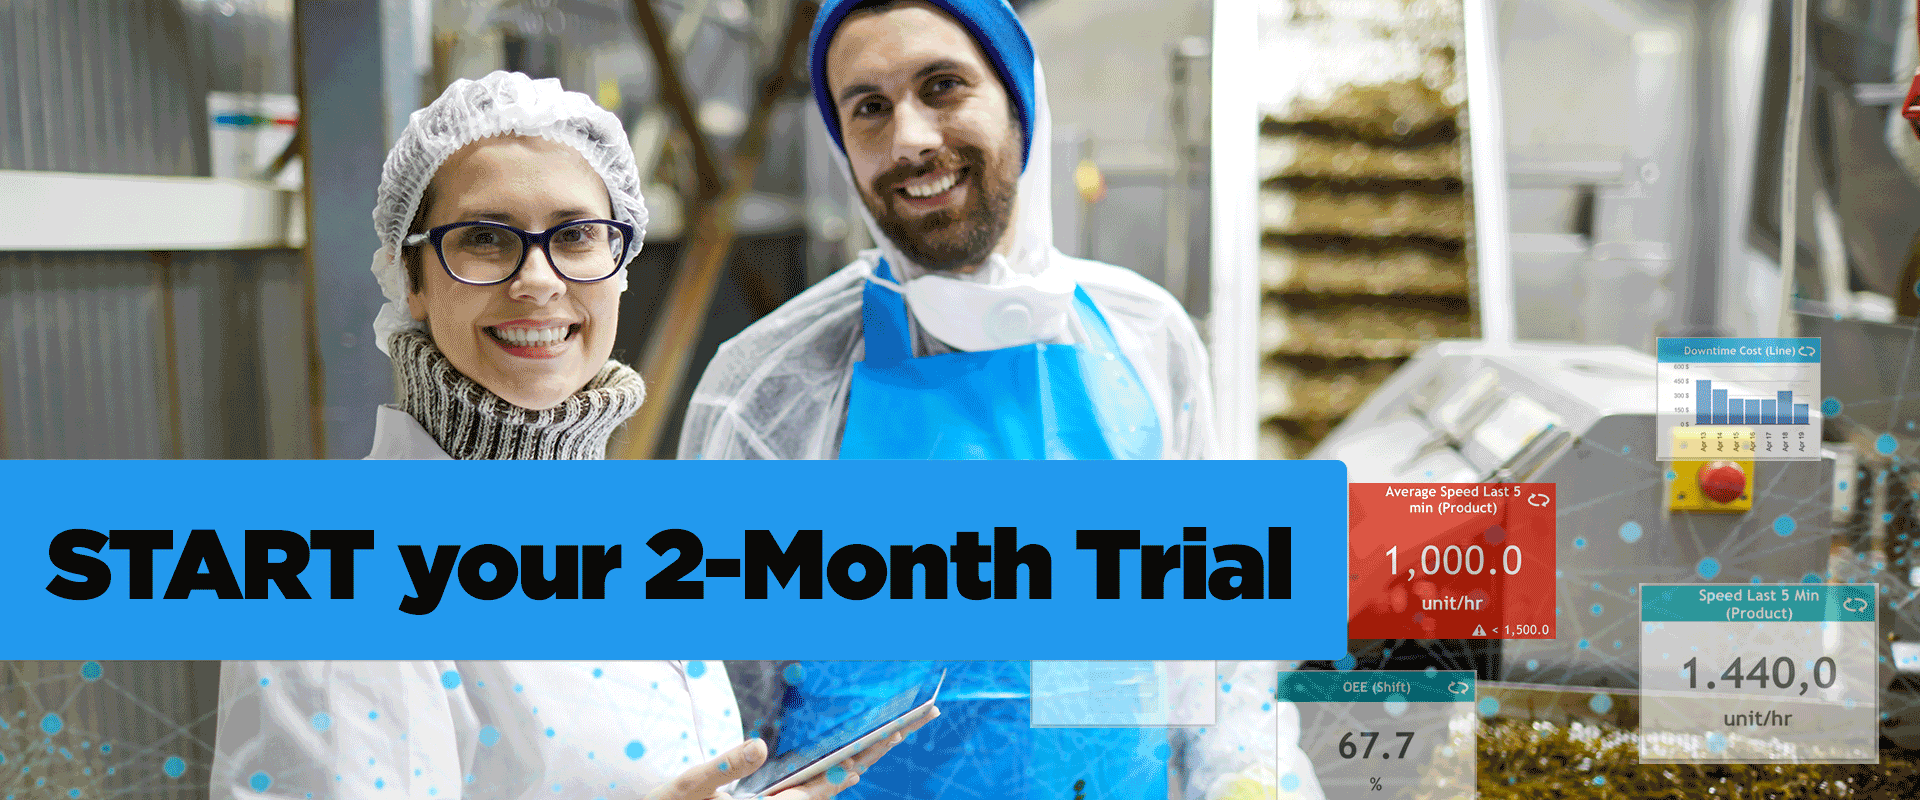 Start your 2-Month Trial and become a smart factory quickly